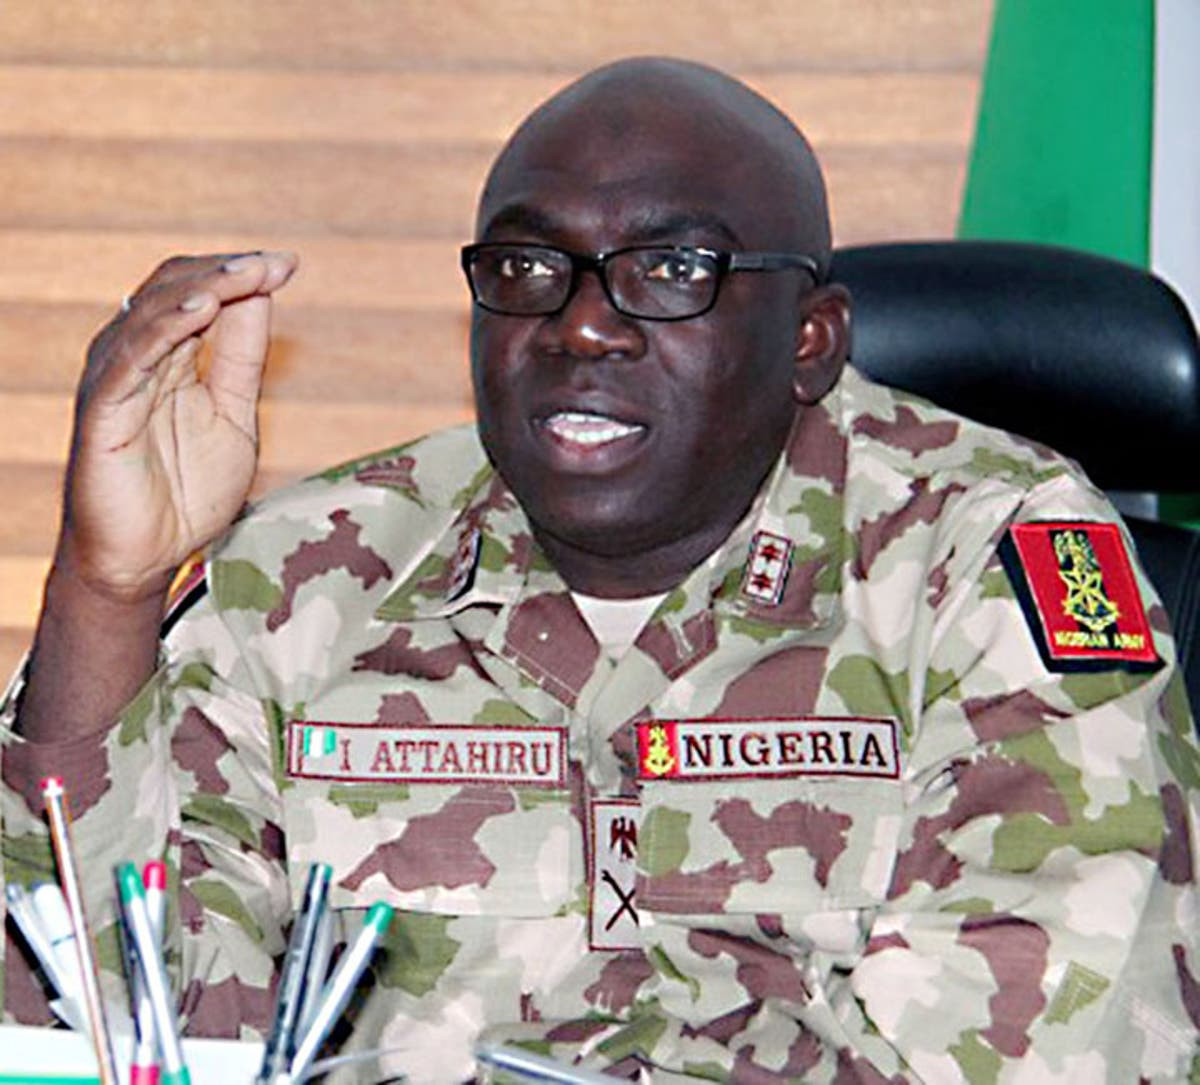 Issues of arms procurement were done by specific individuals, call these individuals to explain to you - COAS Ibrahim Attahiru tells House of Reps members